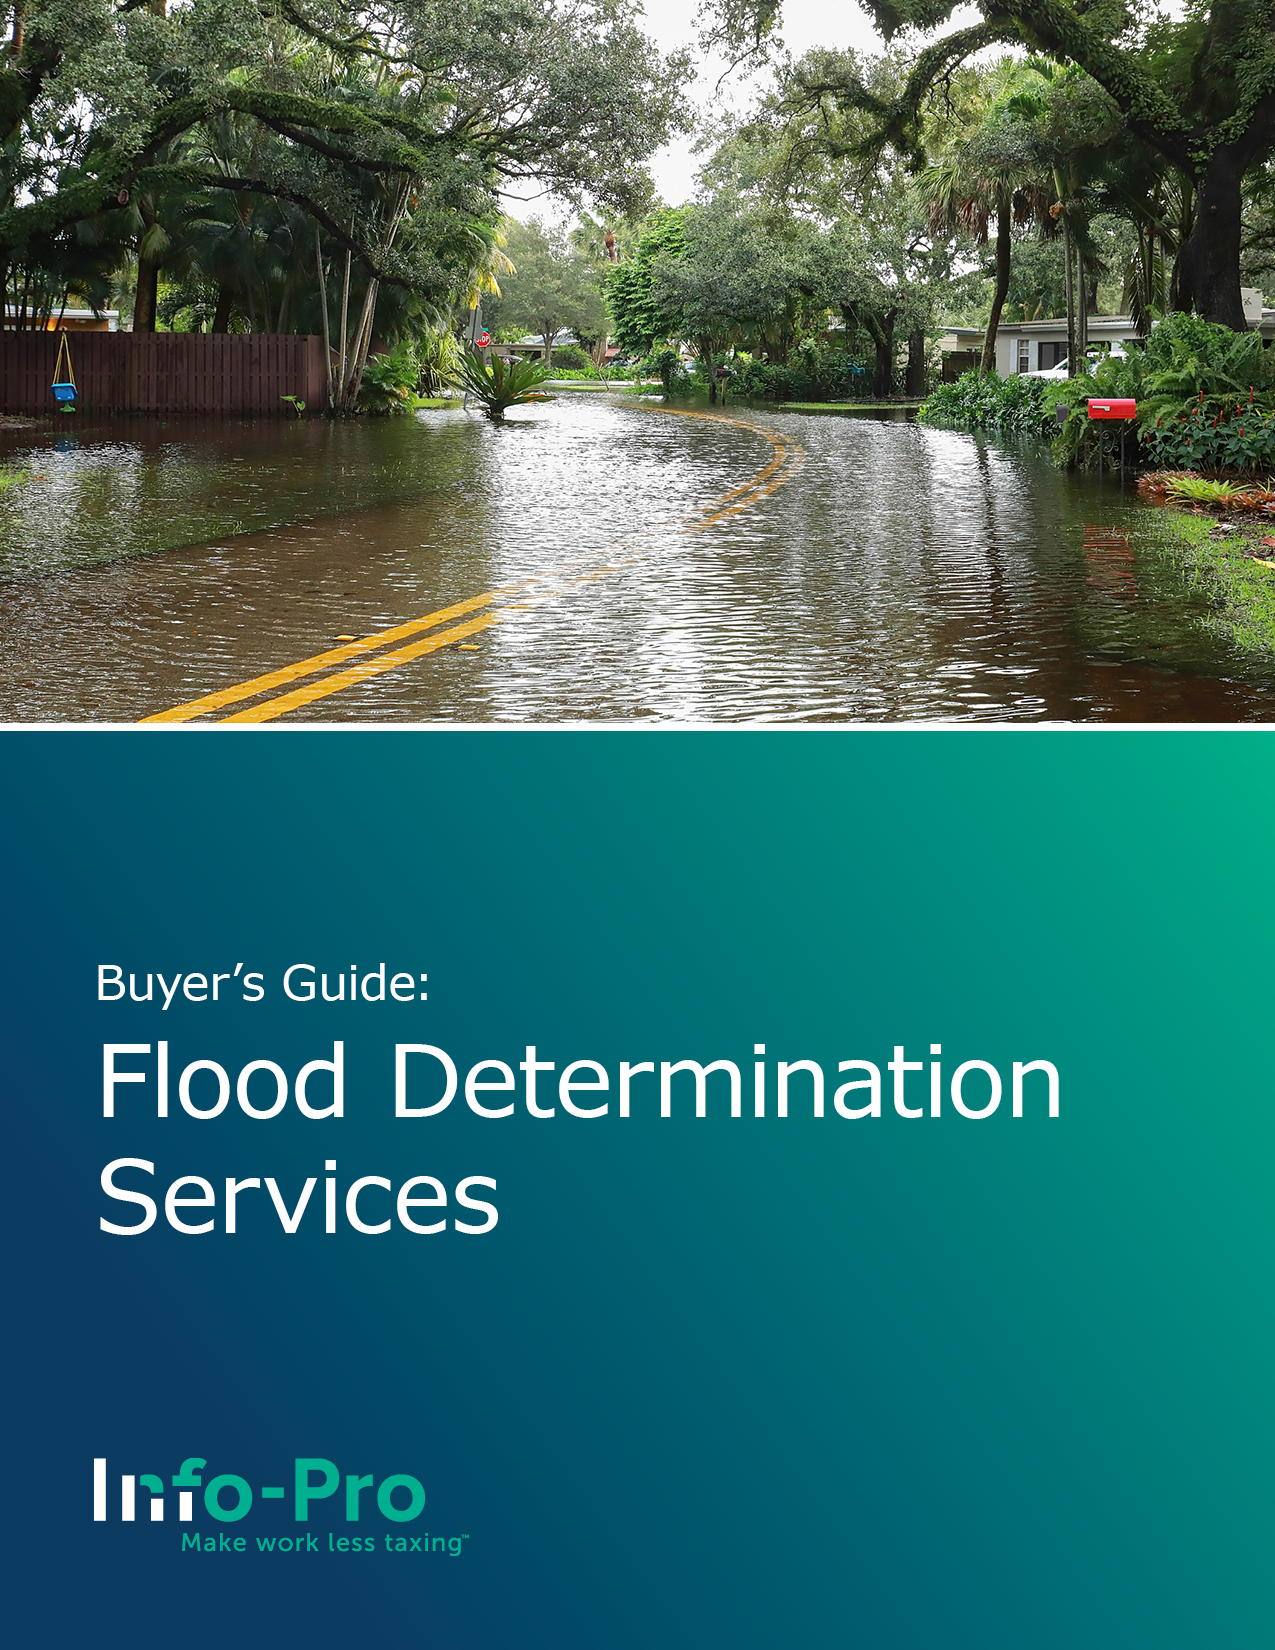 Buyers Guide: Flood Determination Services